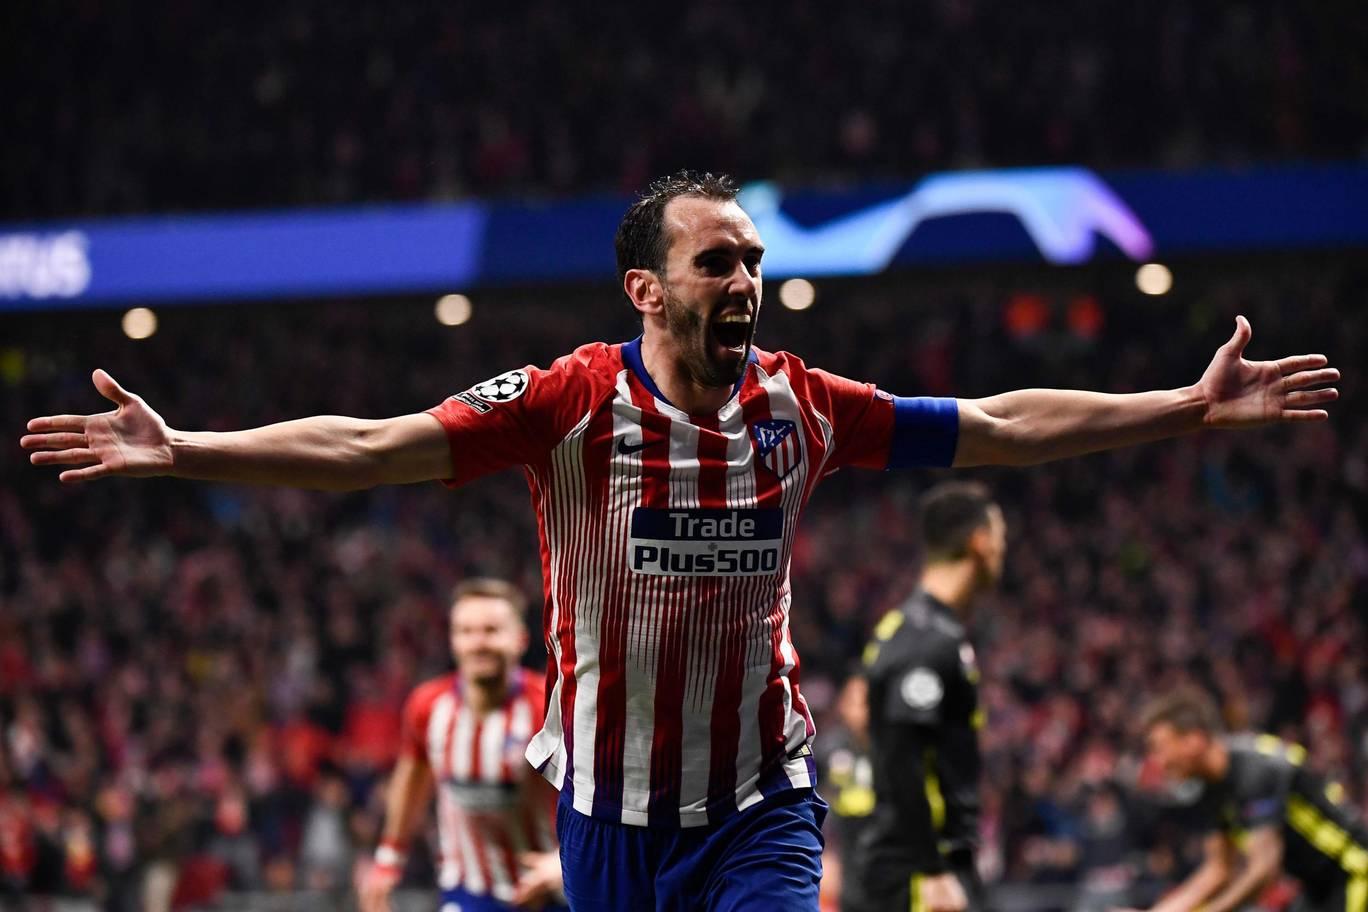 Godin celebrates following his goal - Madrid's second of the match.